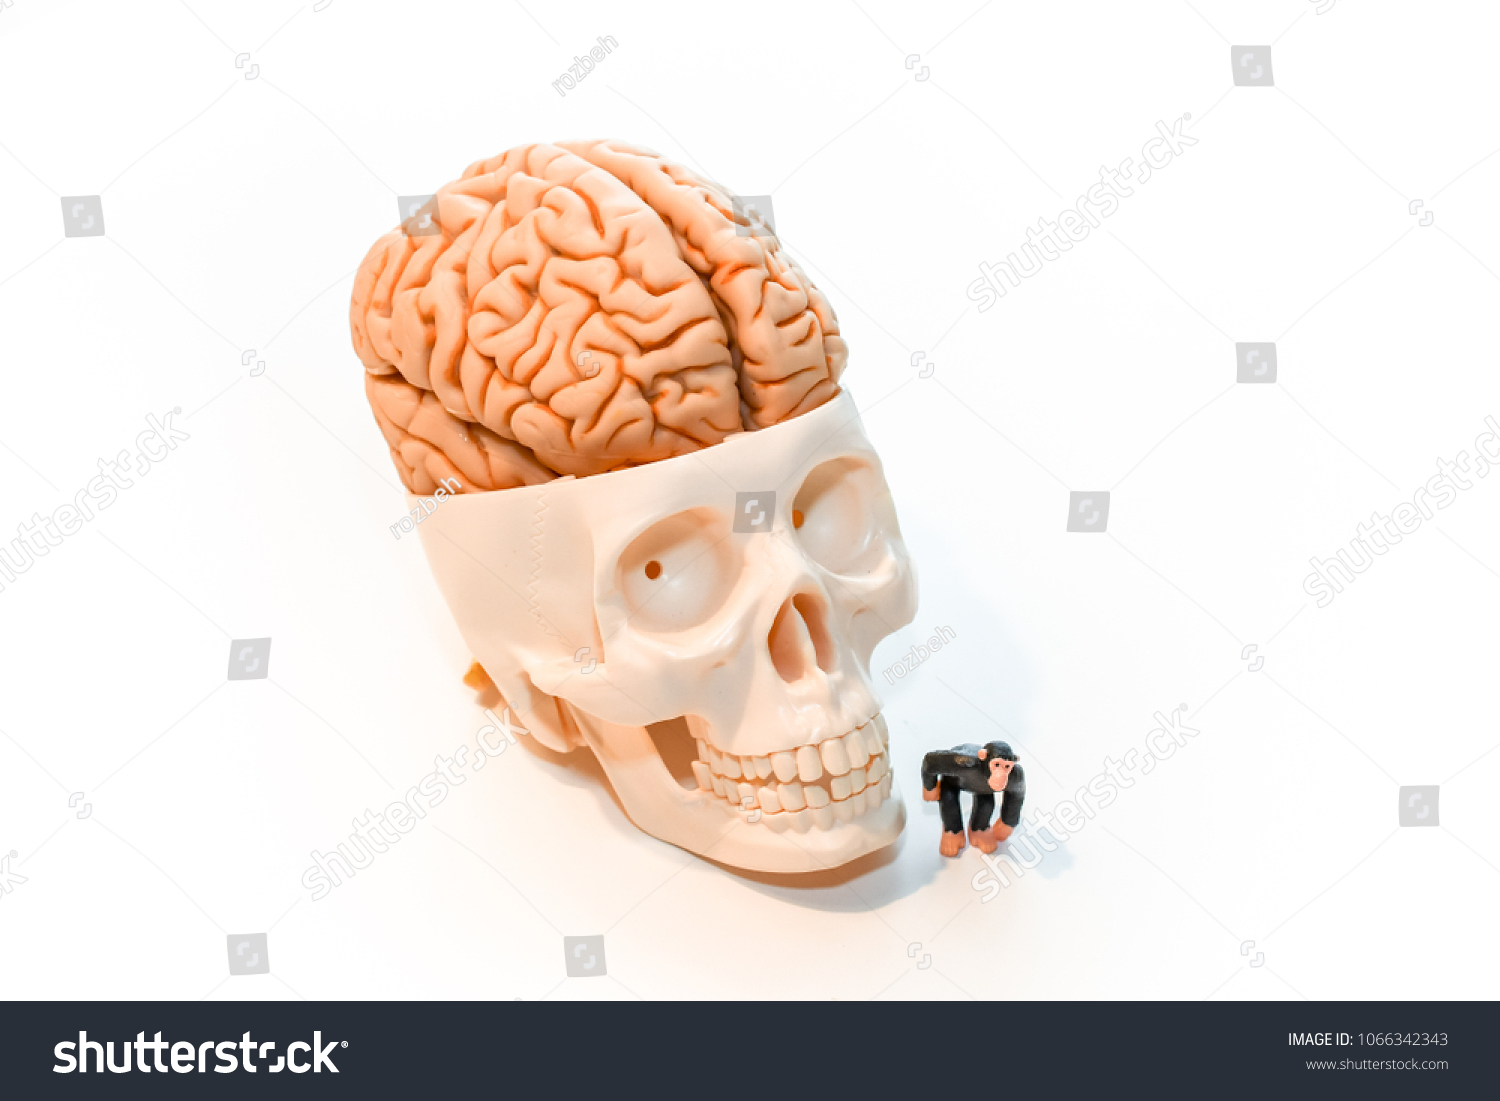 Skull Big Brain Little Monkey Toy Stock Photo (Edit Now) 1066342343 ...